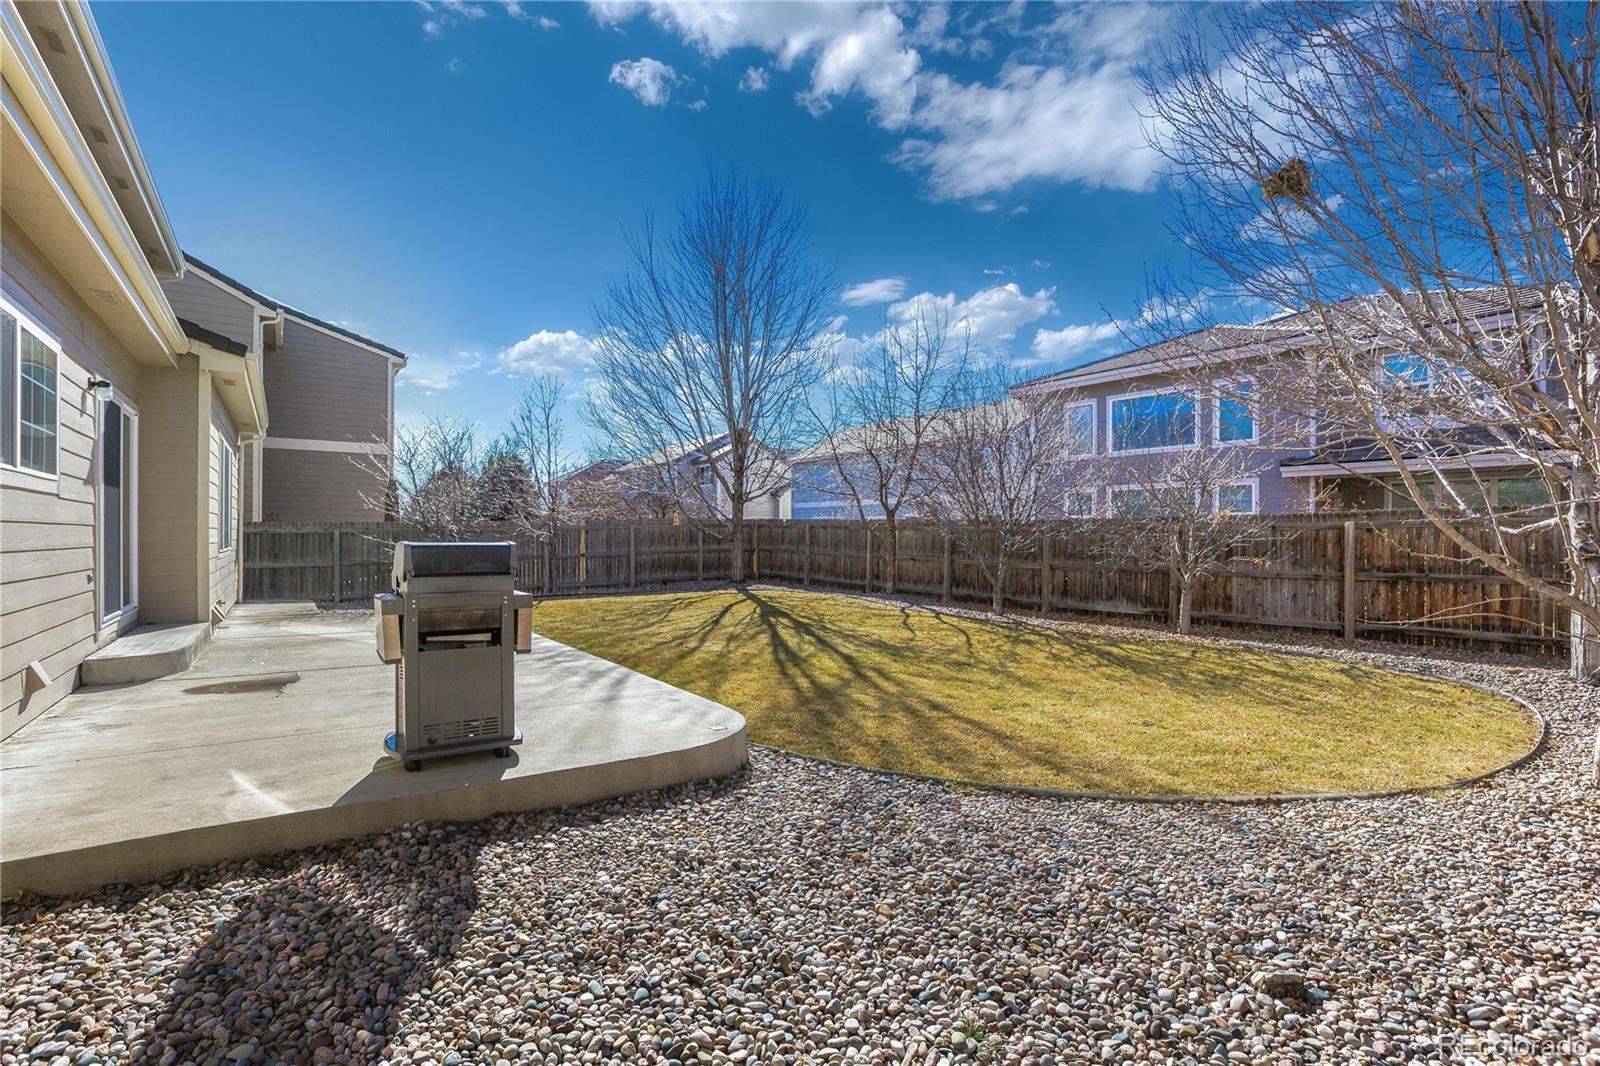 MLS# 6938422 - 38 - 5971 S Helena Court, Centennial, CO 80016